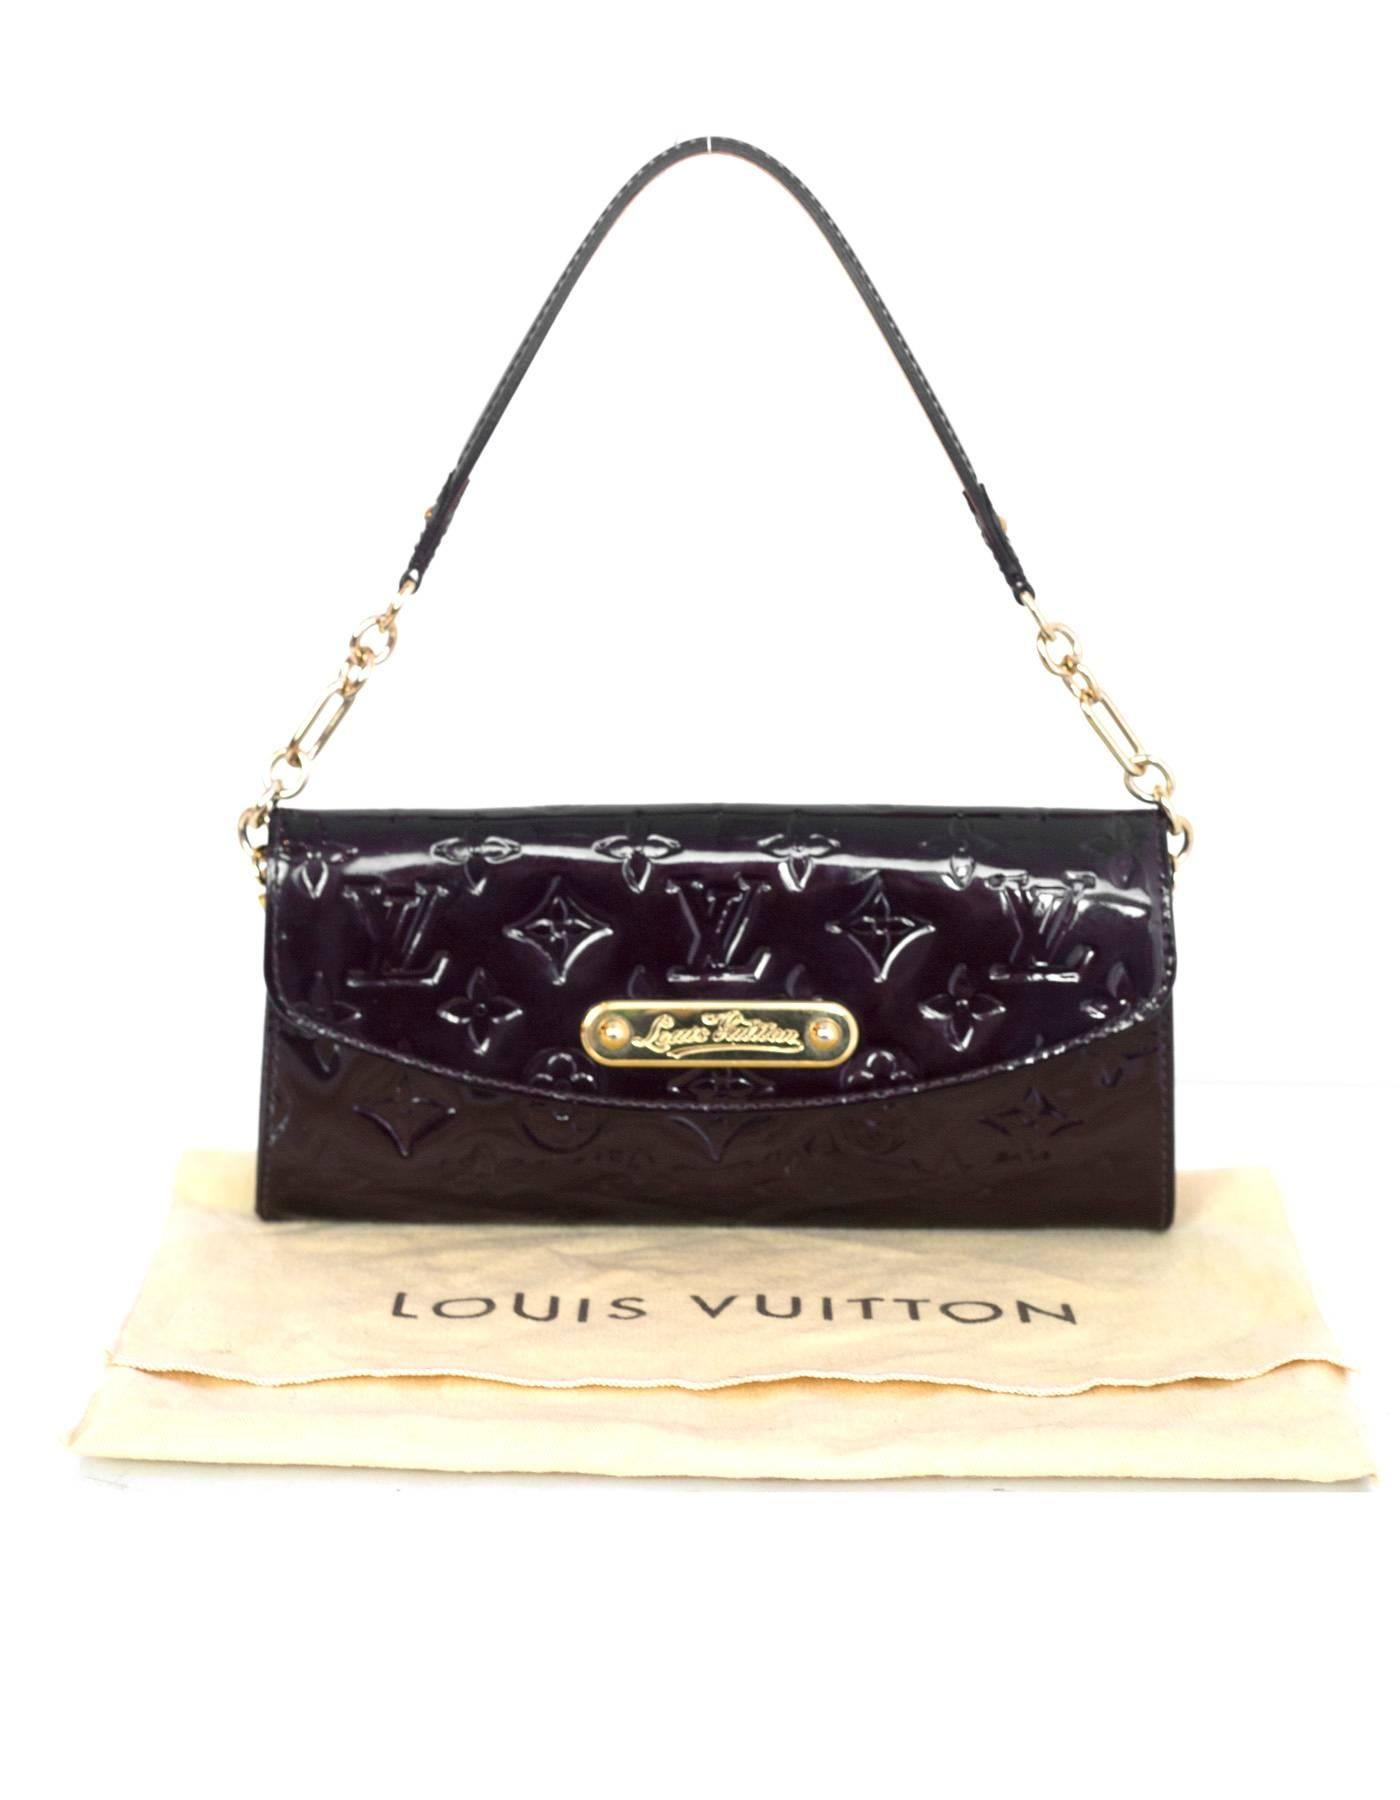 7d6cfc0e1d7b8 Louis Vuitton Amarante Vernis Sunset Boulevard Pochette Bag For Sale at  1stdibs